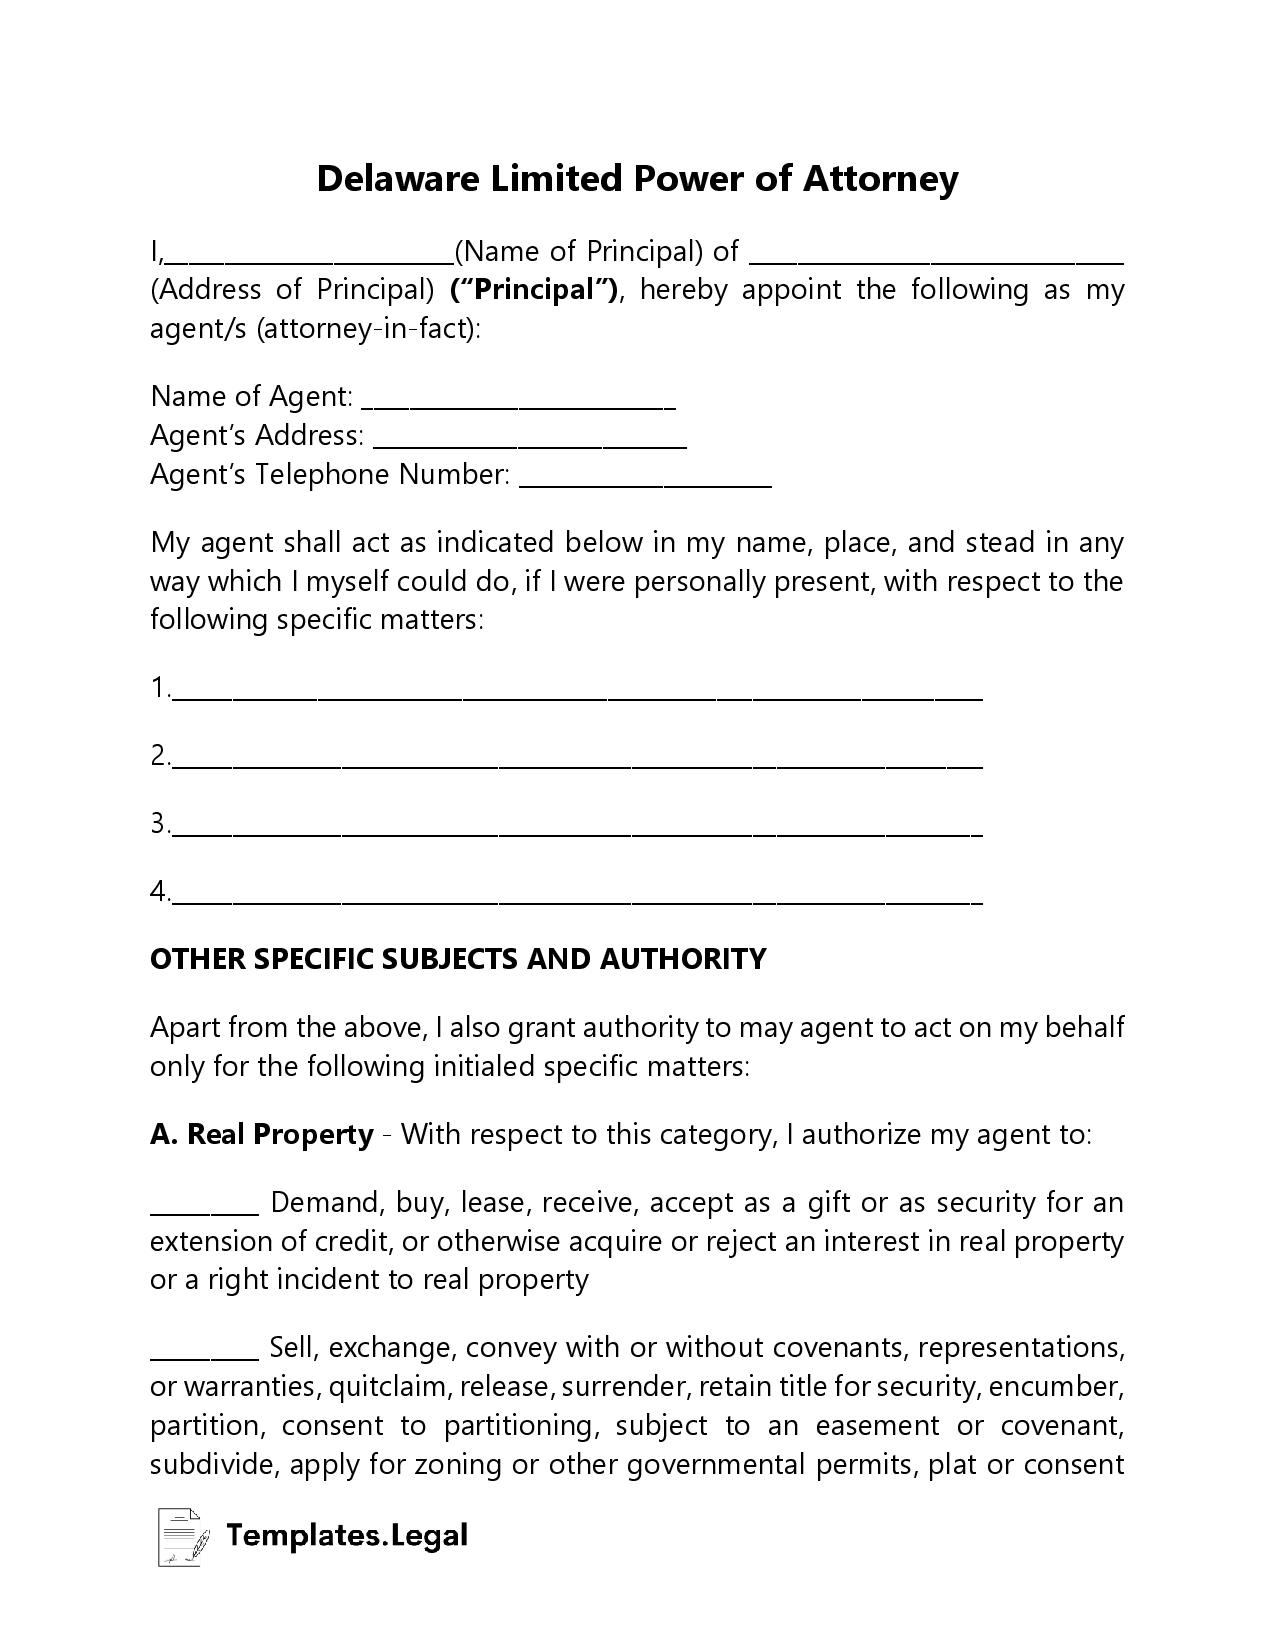 Delaware Limited Power of Attorney - Templates.Legal